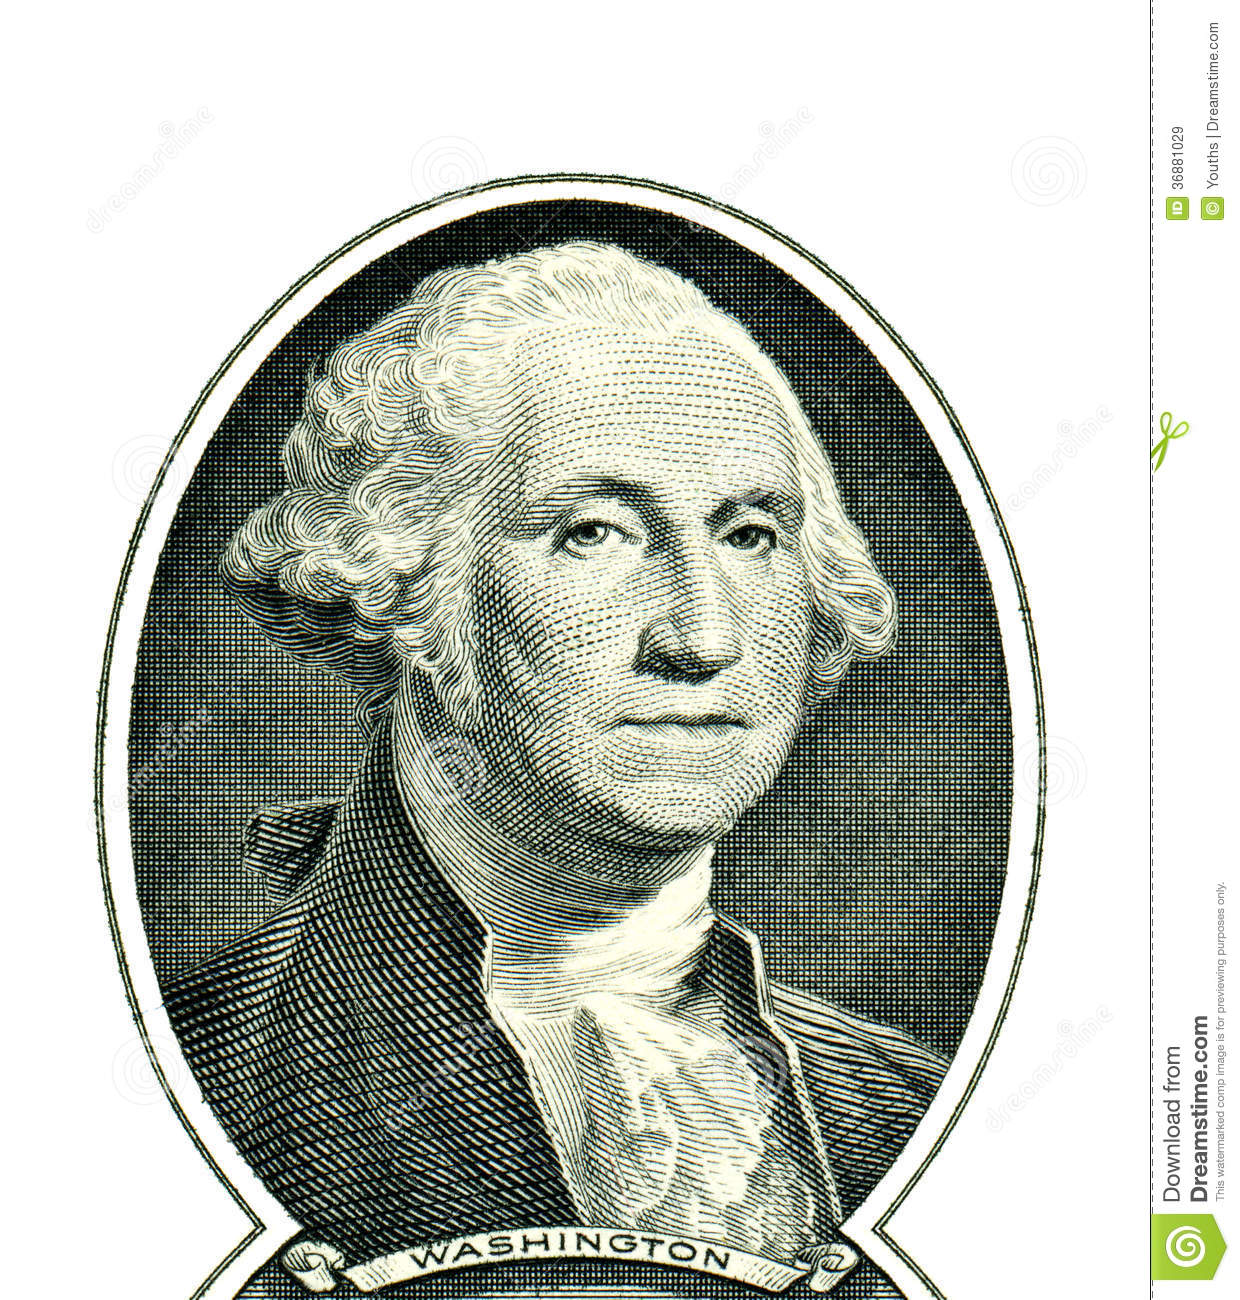 Download George Washington Su Un Dollaro Immagine Stock - Immagine di banca, acquaforte: 36881029